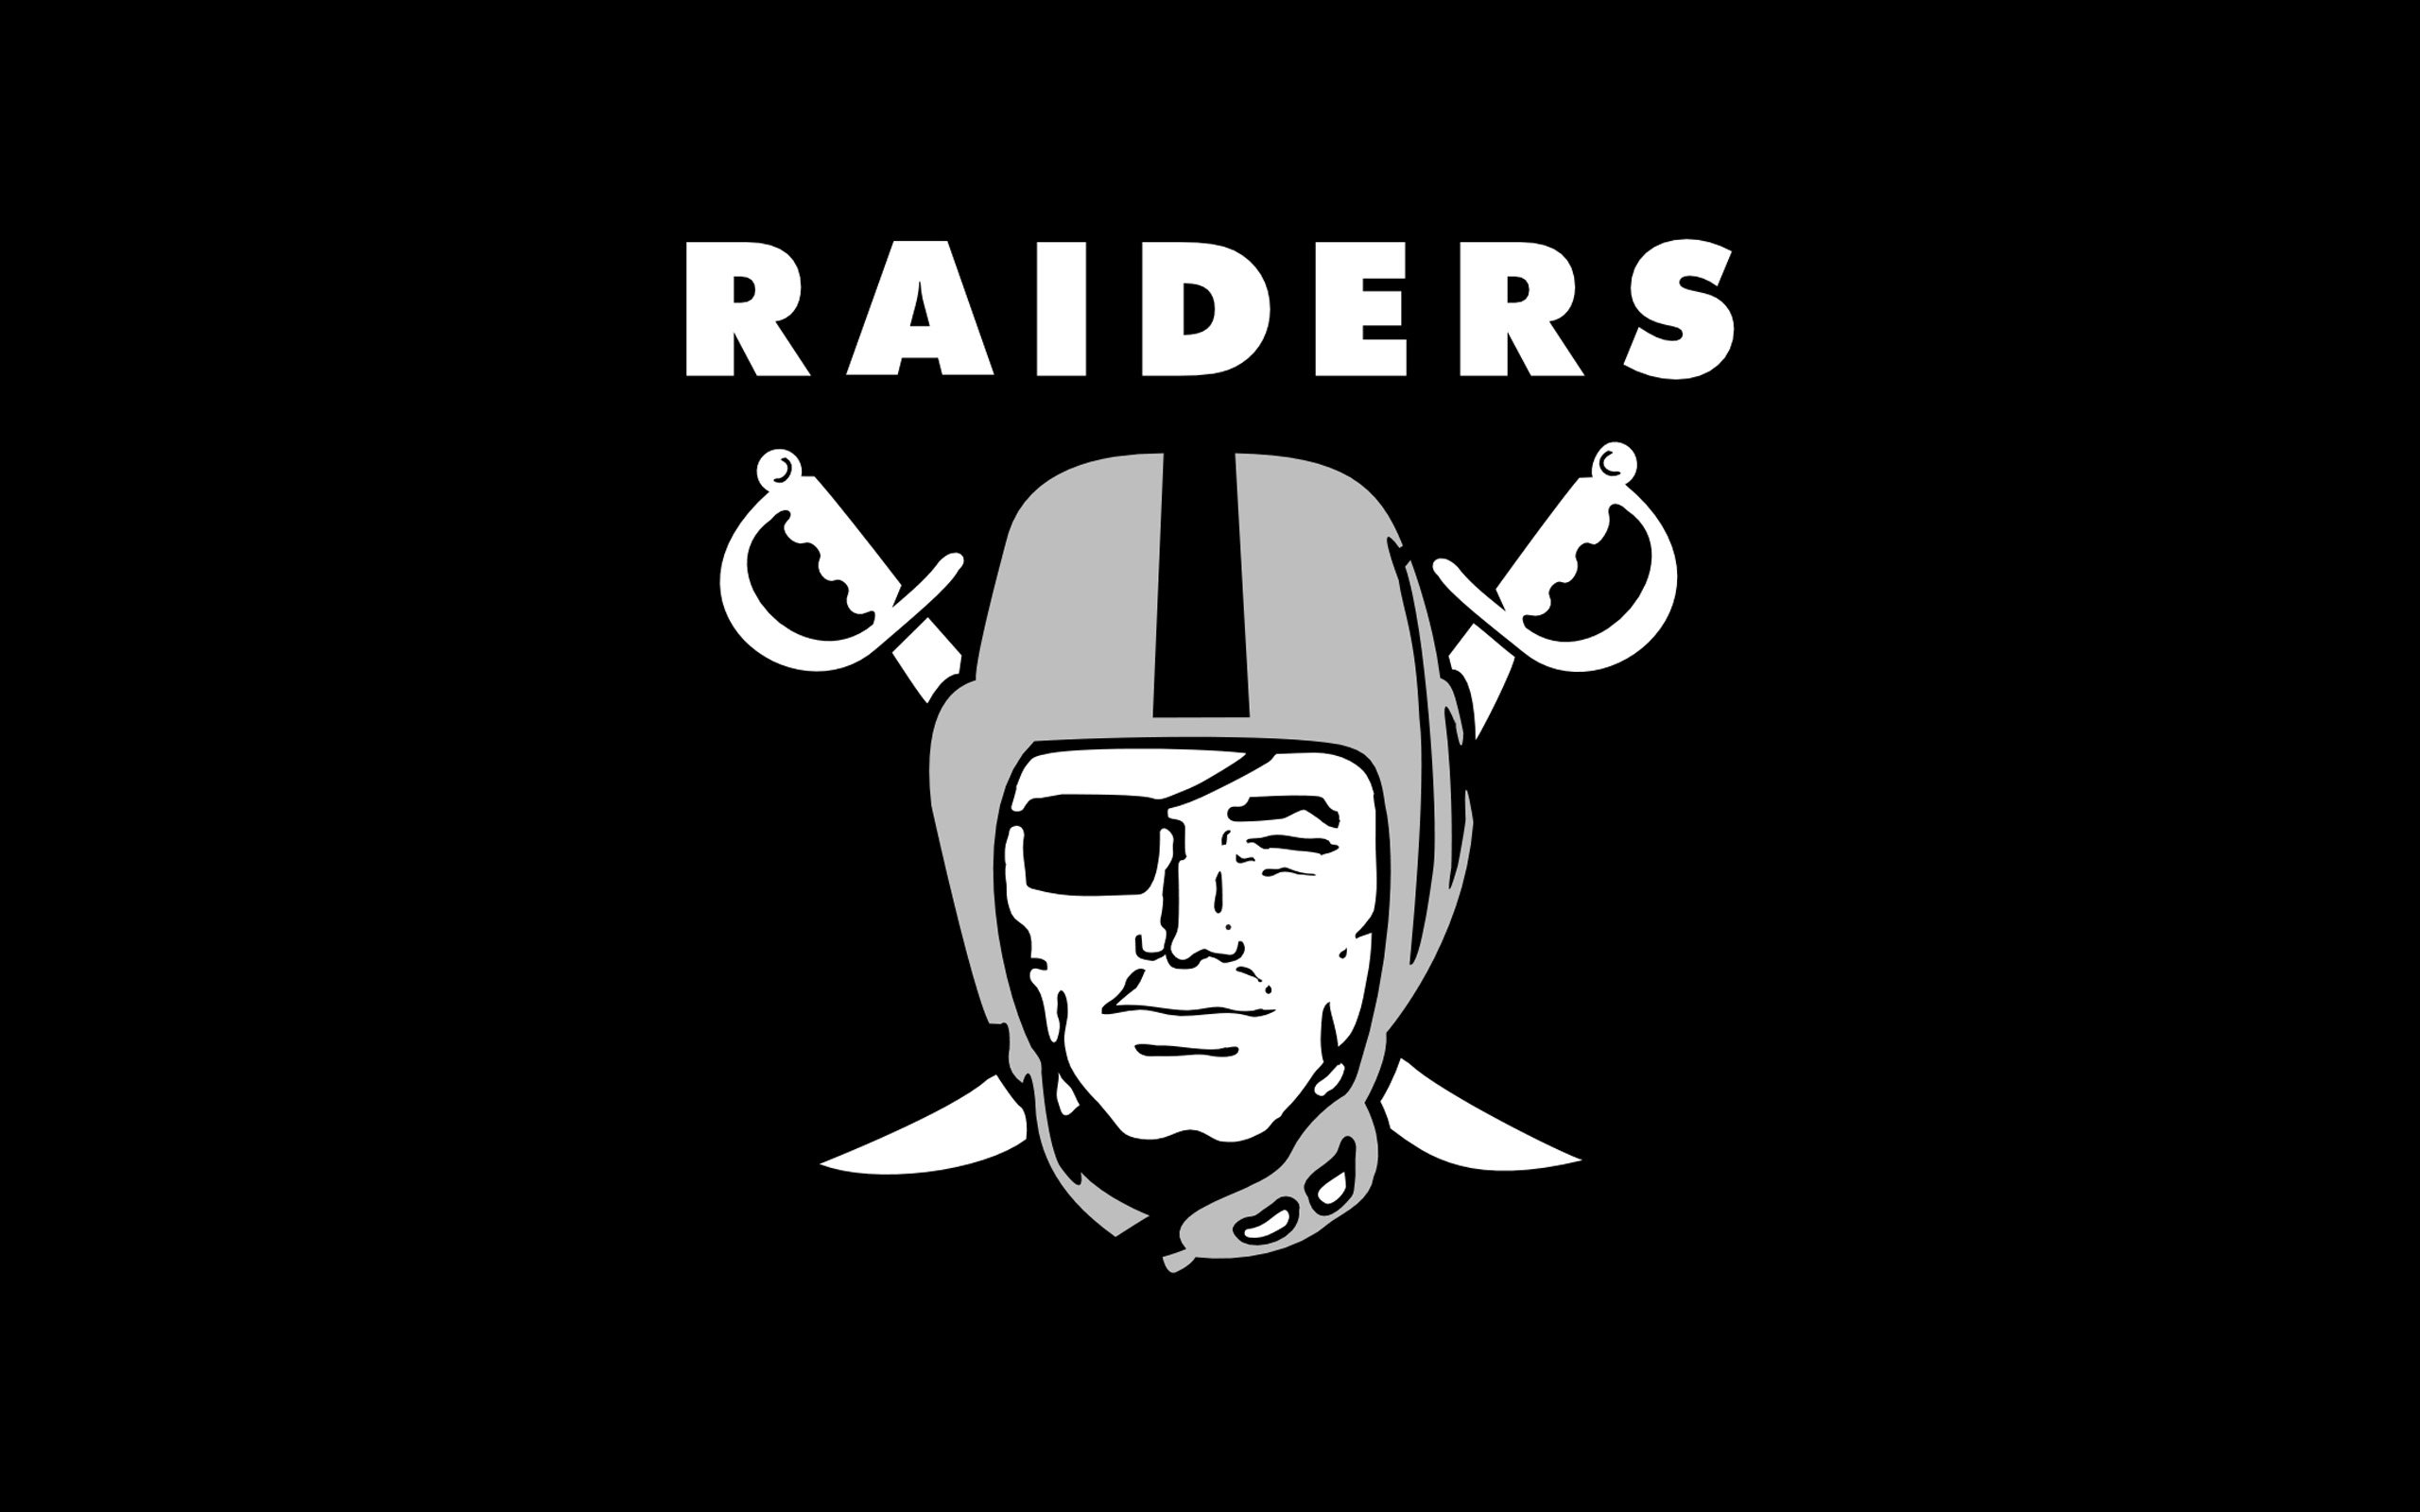 Best Oakland Raiders Wallpaper ID188444 For High Resolution Hd 2560x1600 Computer